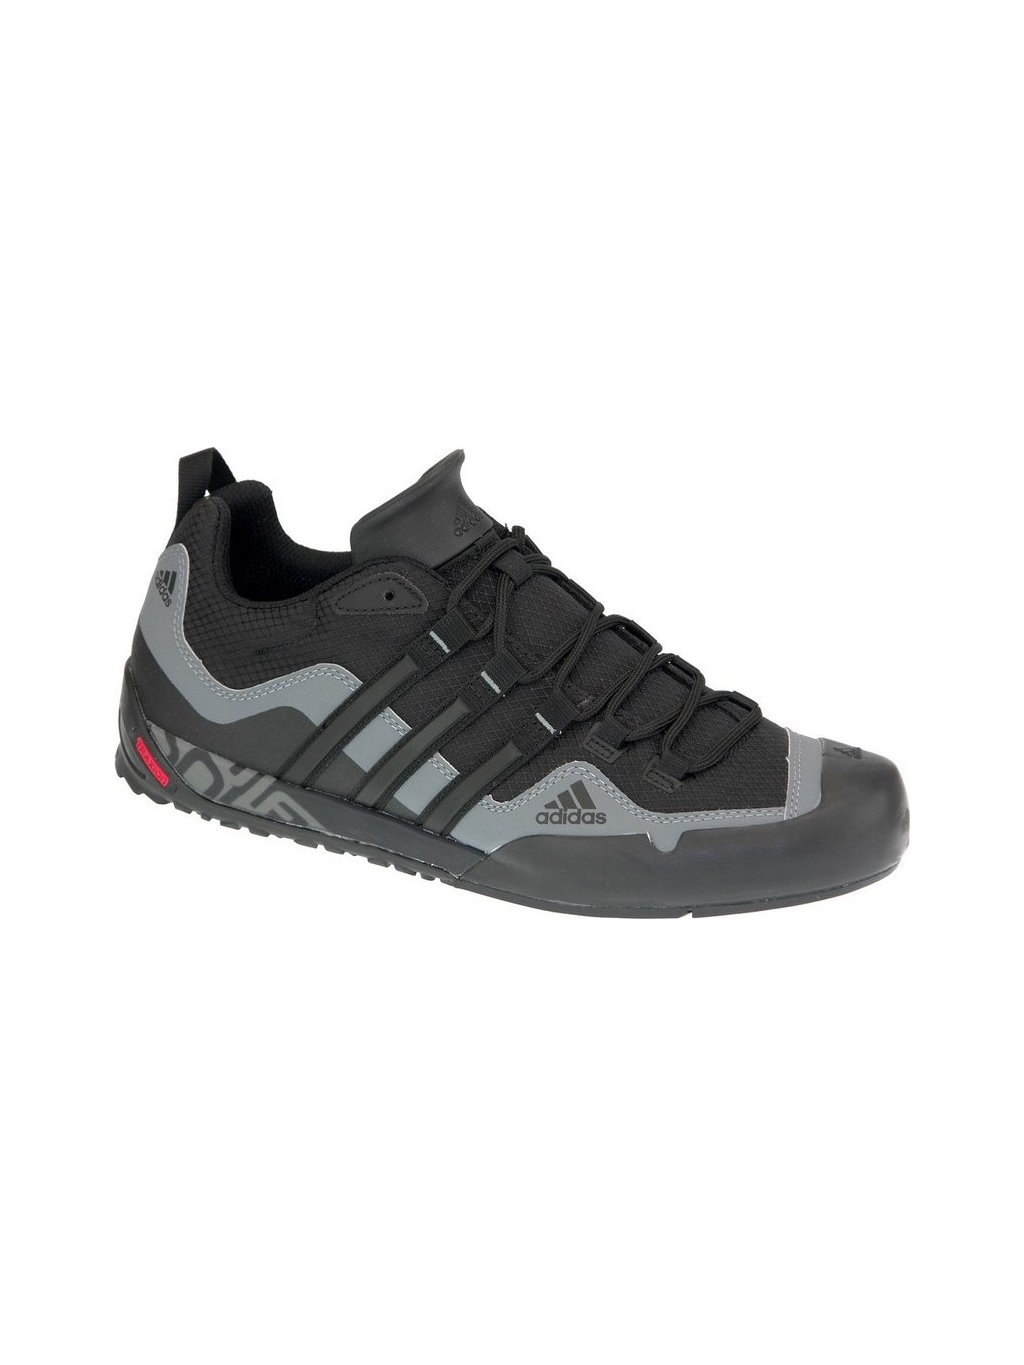 ADIDAS TERREX SWIFT SOLO (D67031)